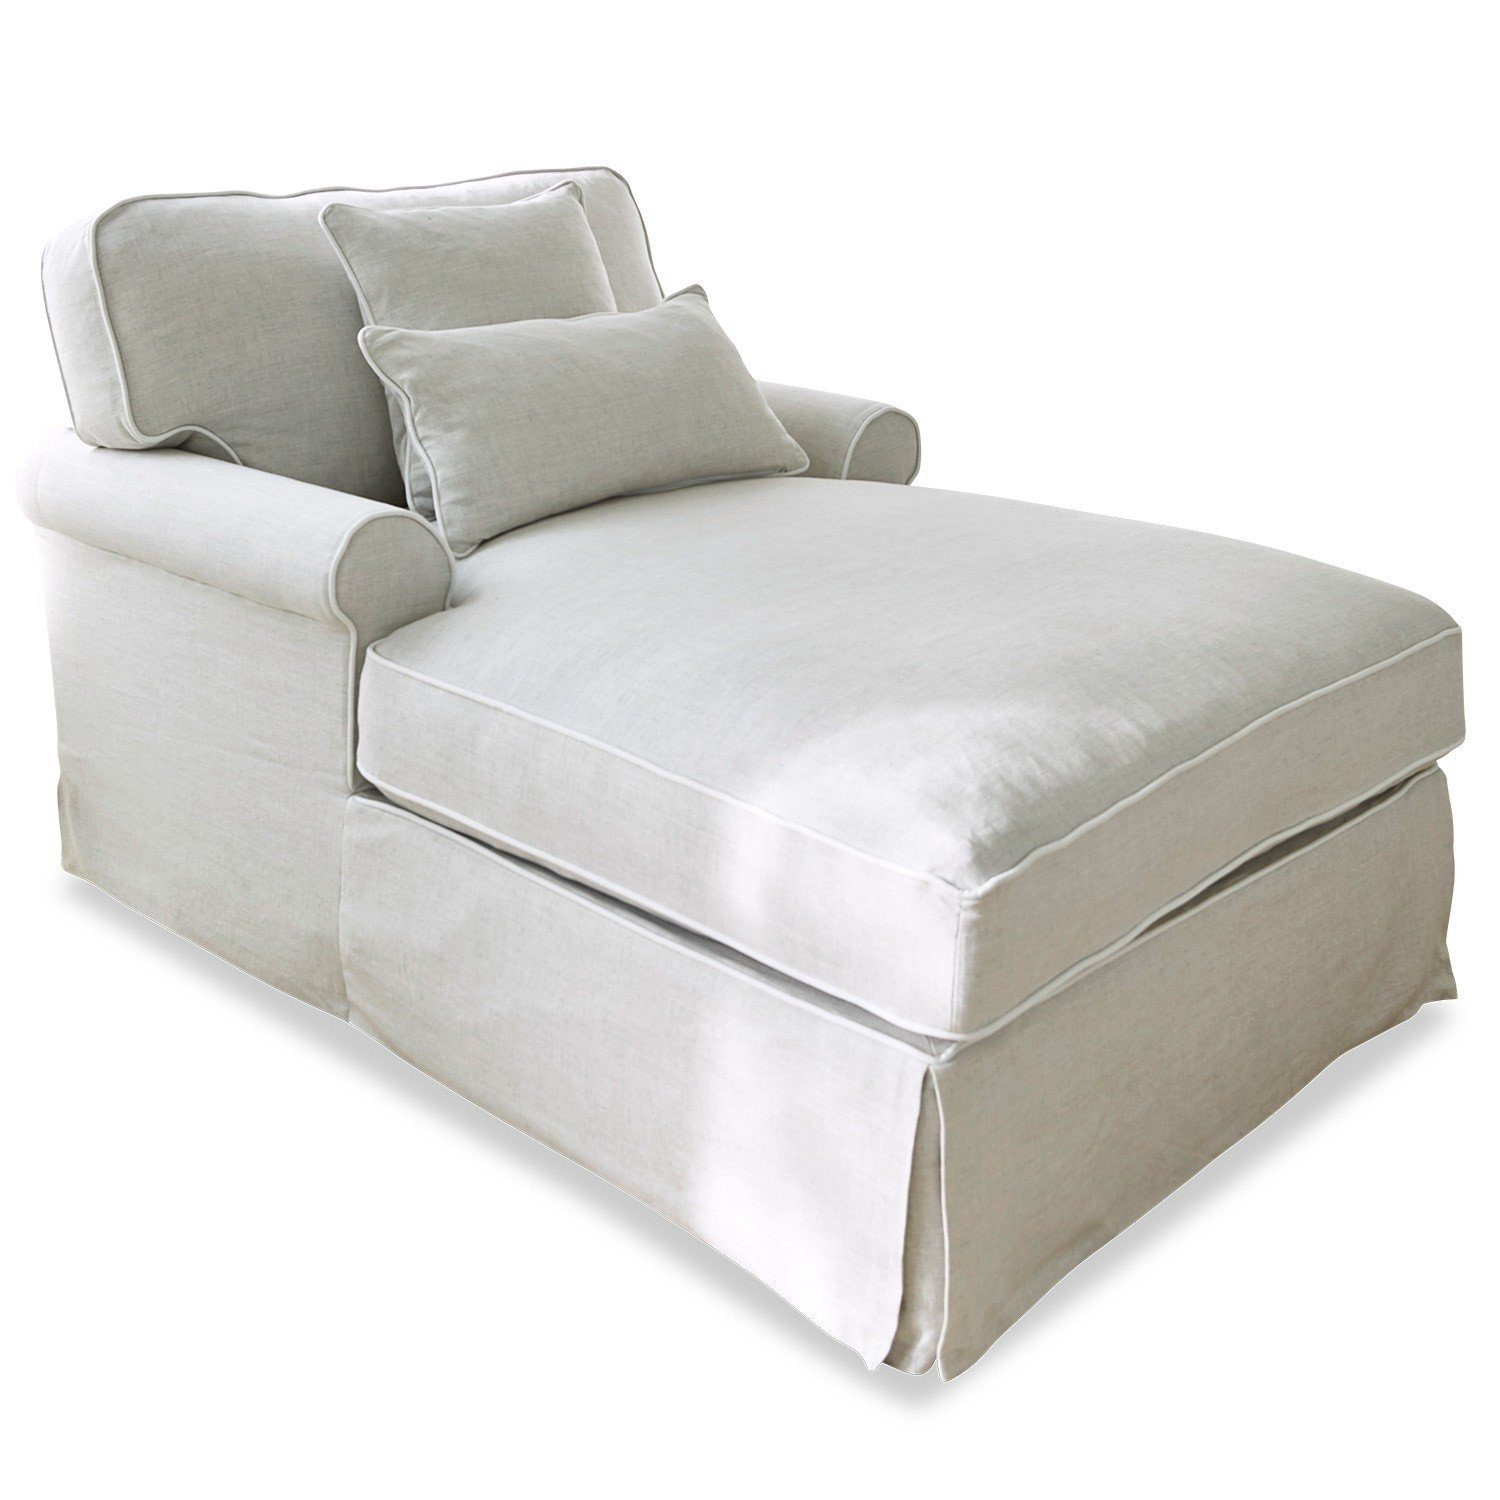 Loberon Chaiselongue »Compton«